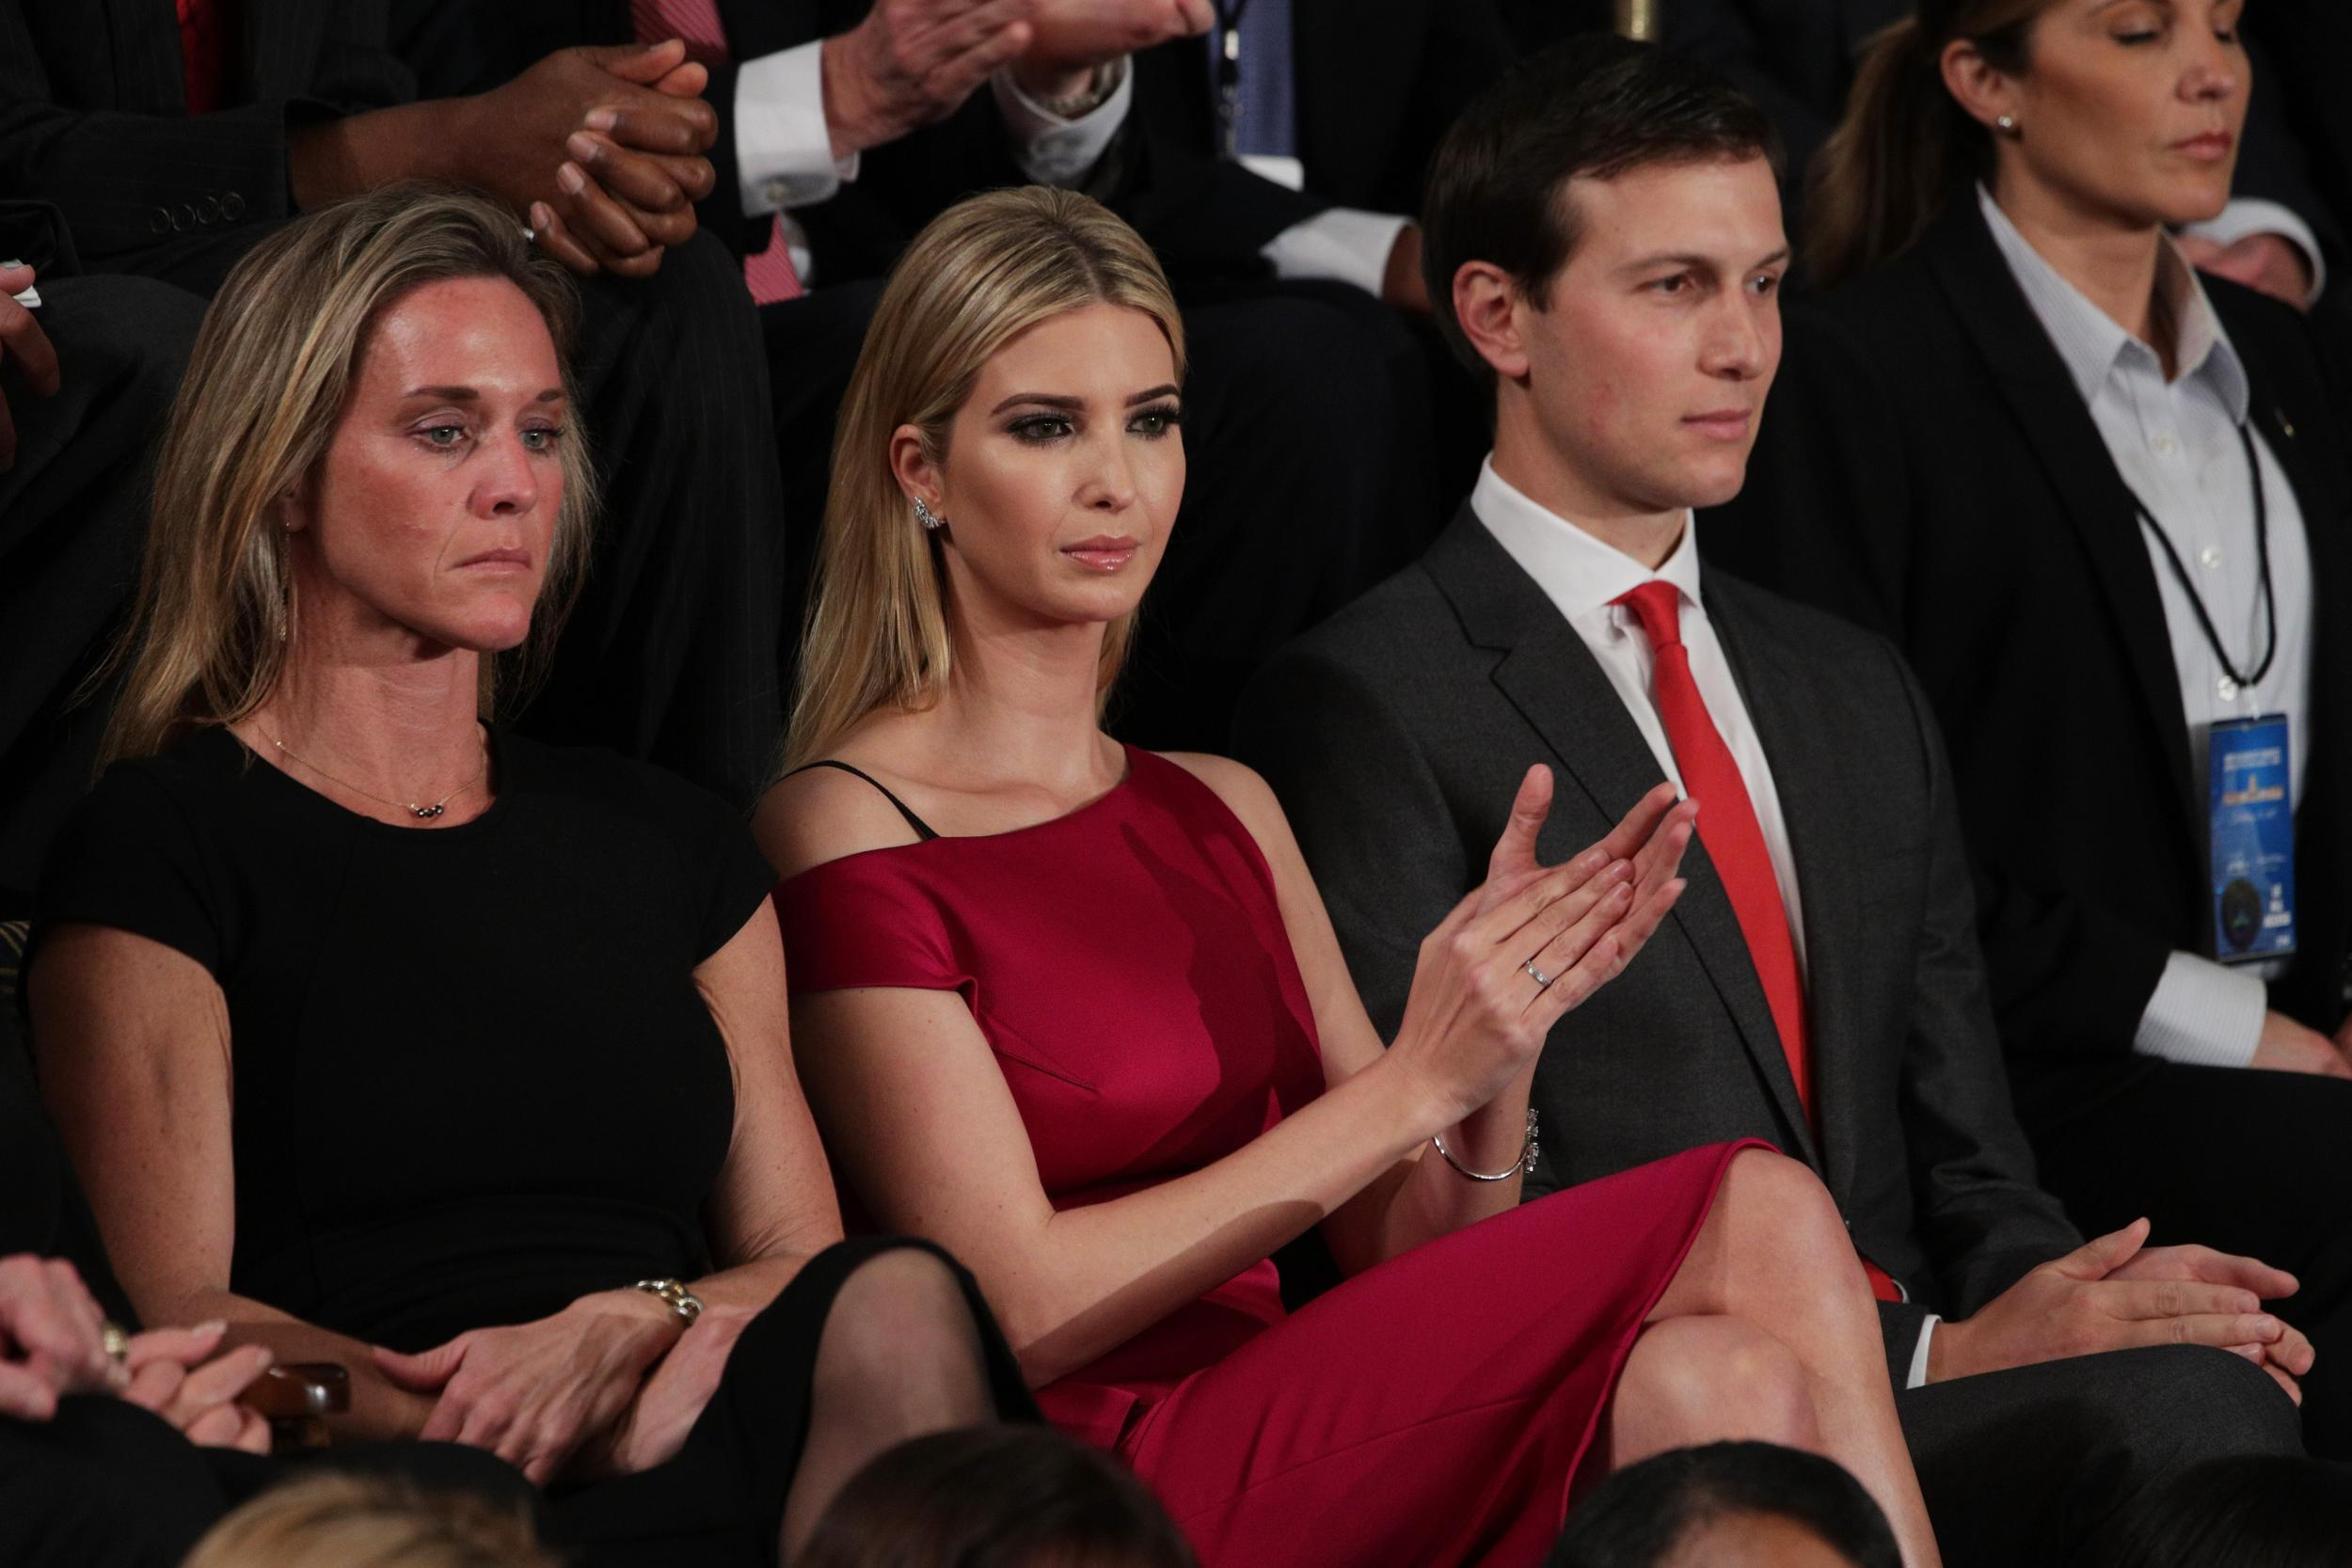 Trump says 'buy American' while Ivanka wears French designer dress